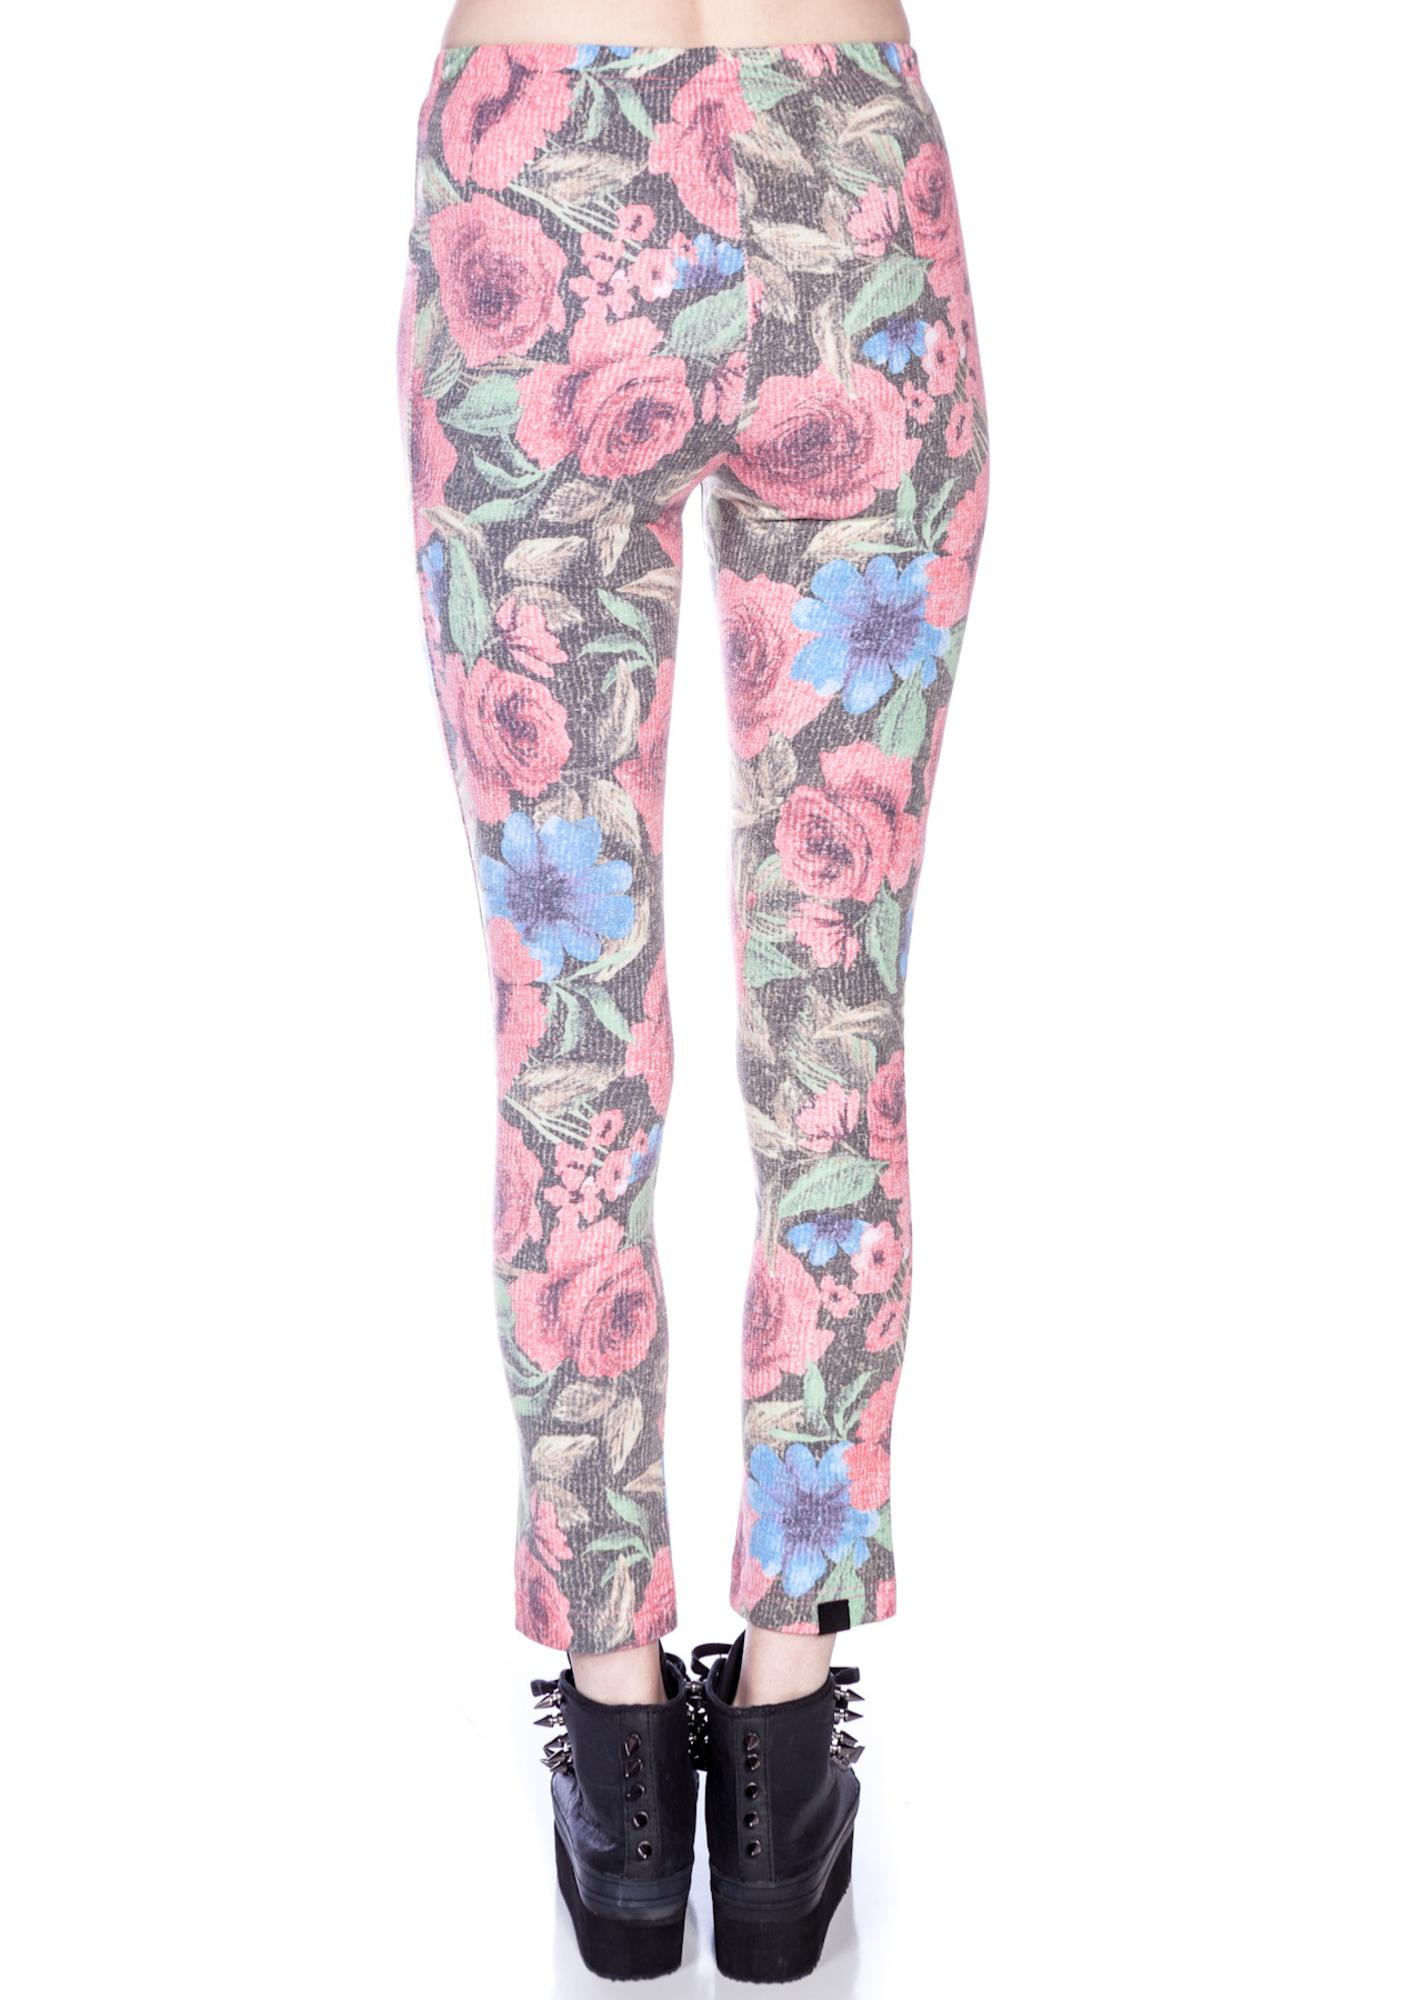 Insight Pocket Full of Posies Leggings